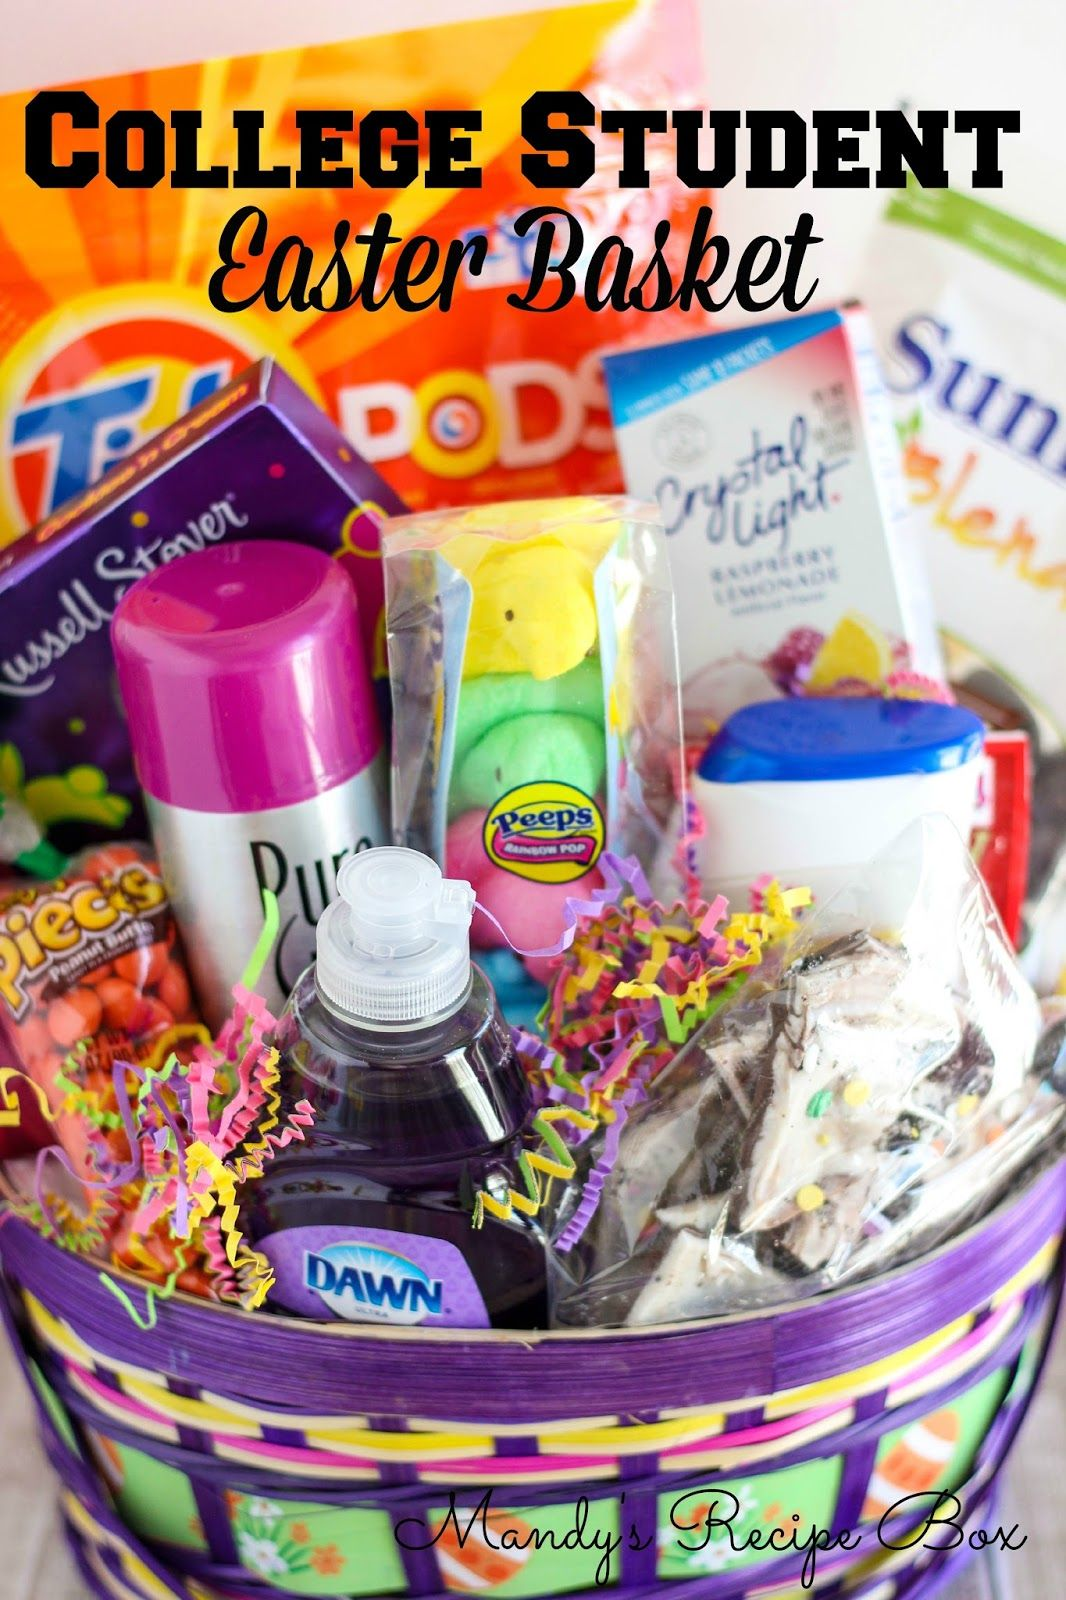 College student easter basket recipe box easter baskets and college college student easter basket negle Gallery